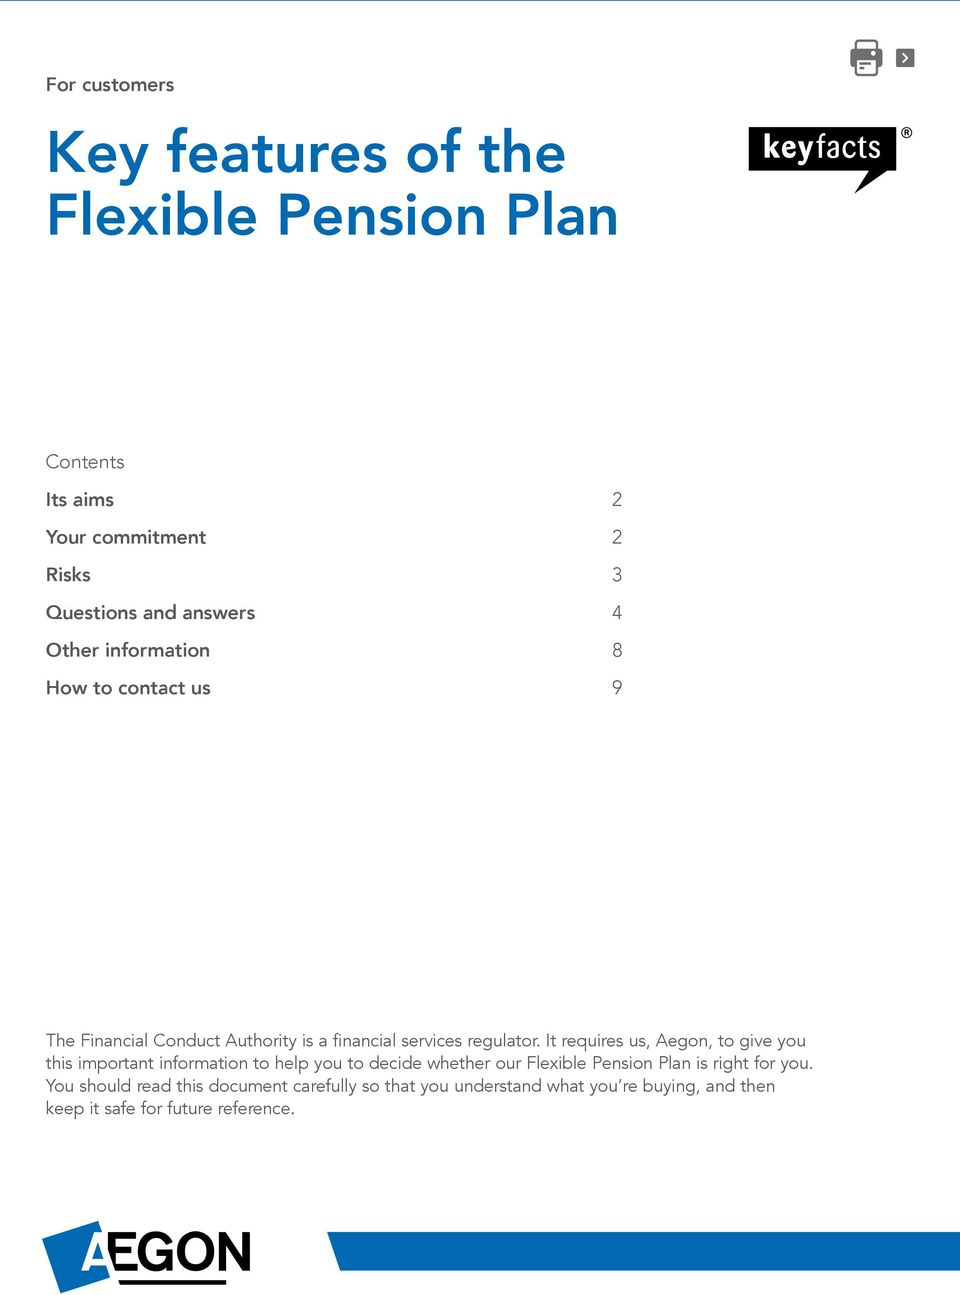 It requires us, Aegon, to give you this important information to help you to decide whether our Flexible Pension Plan is